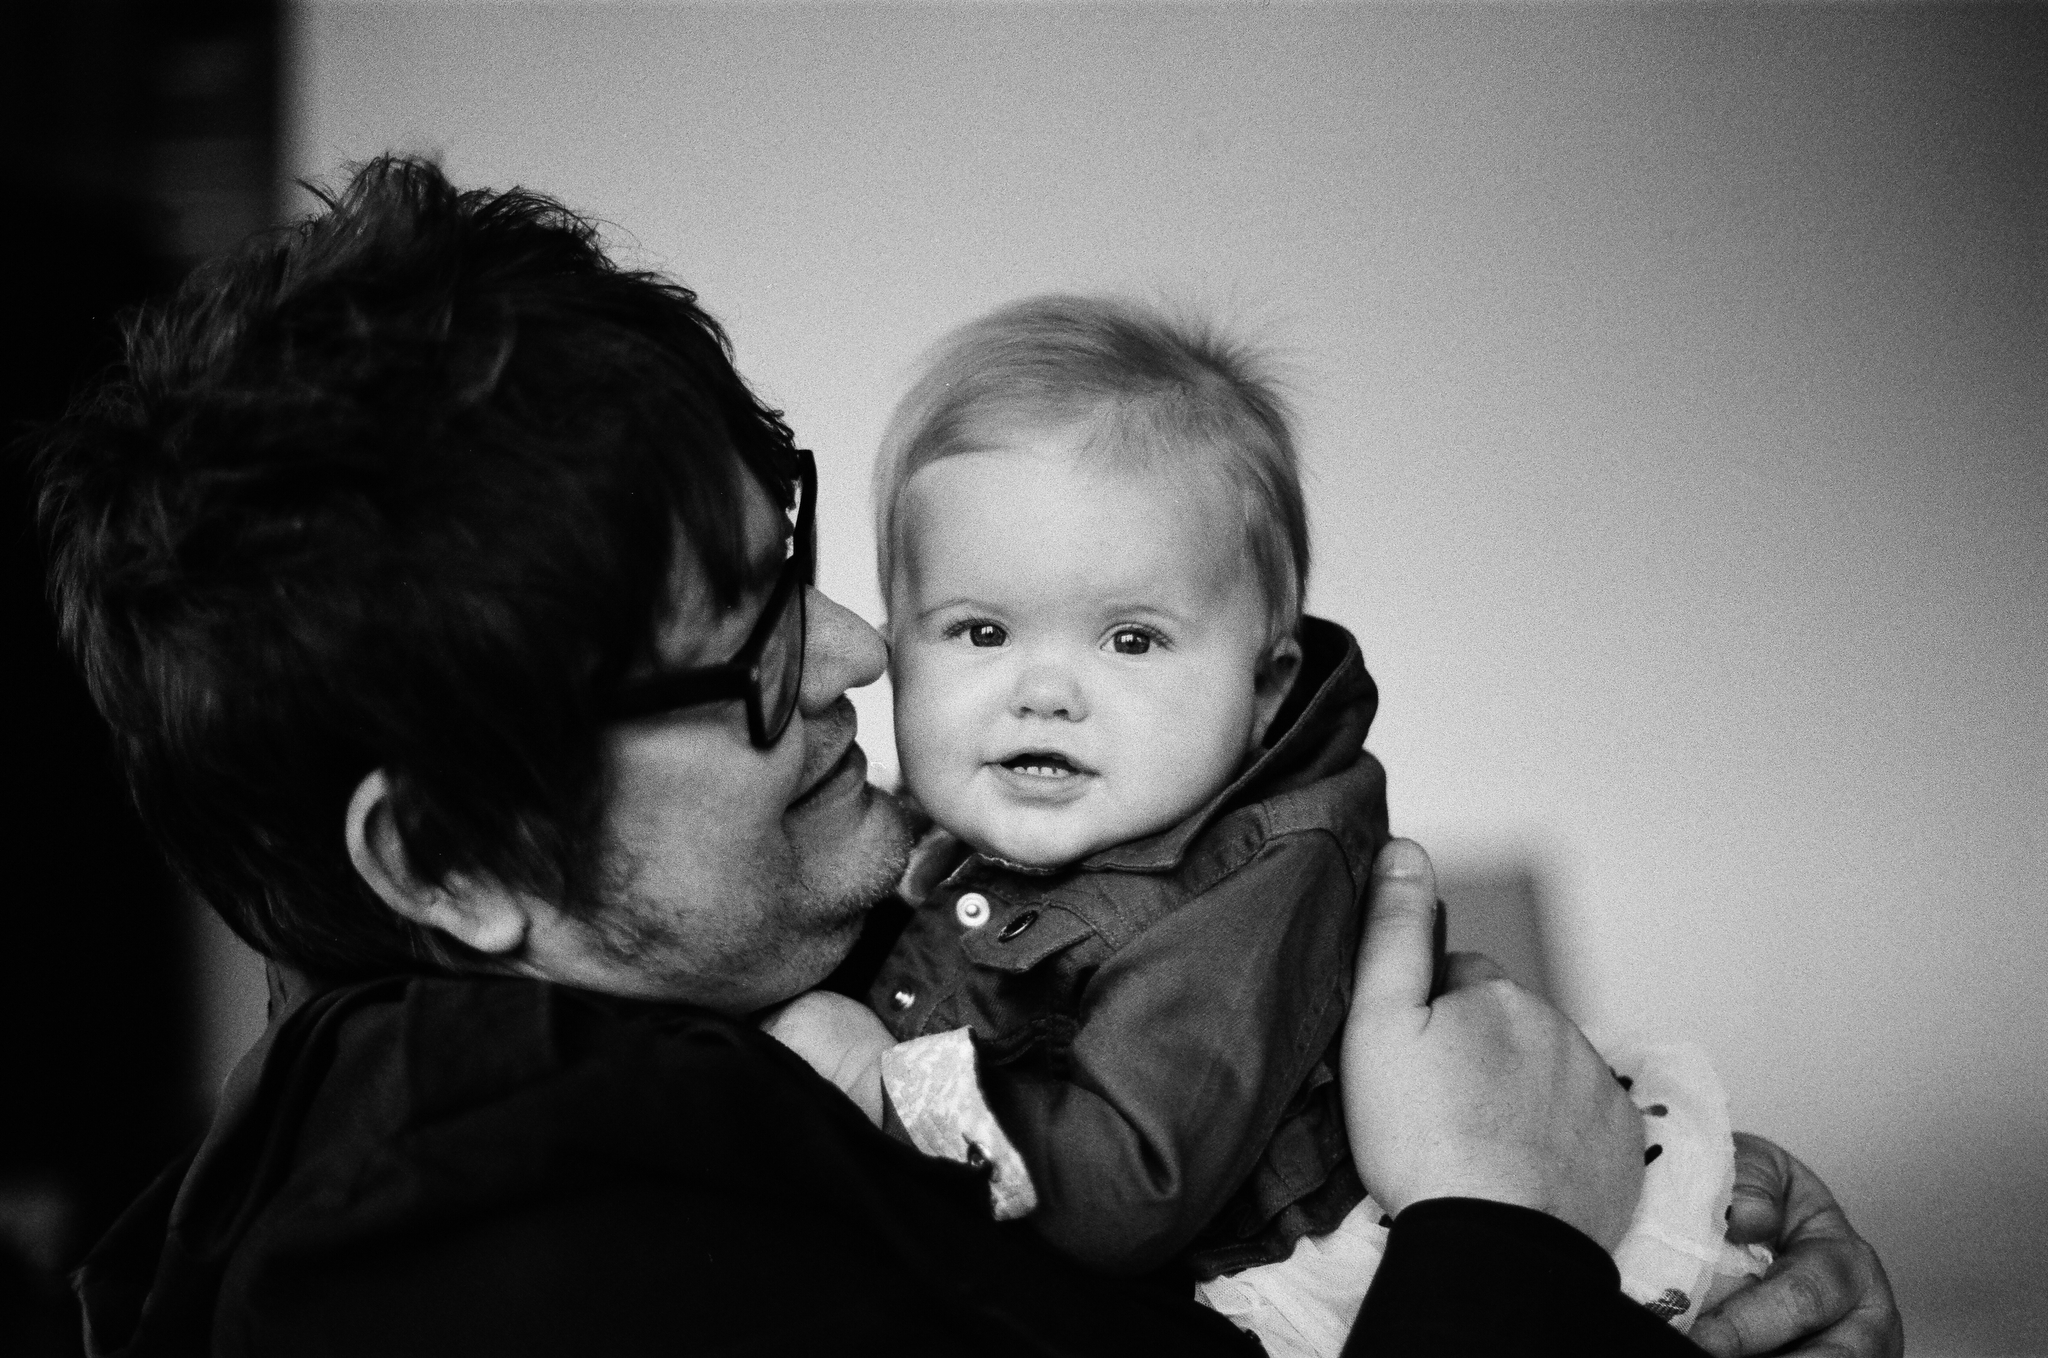 Photos of a father and a baby